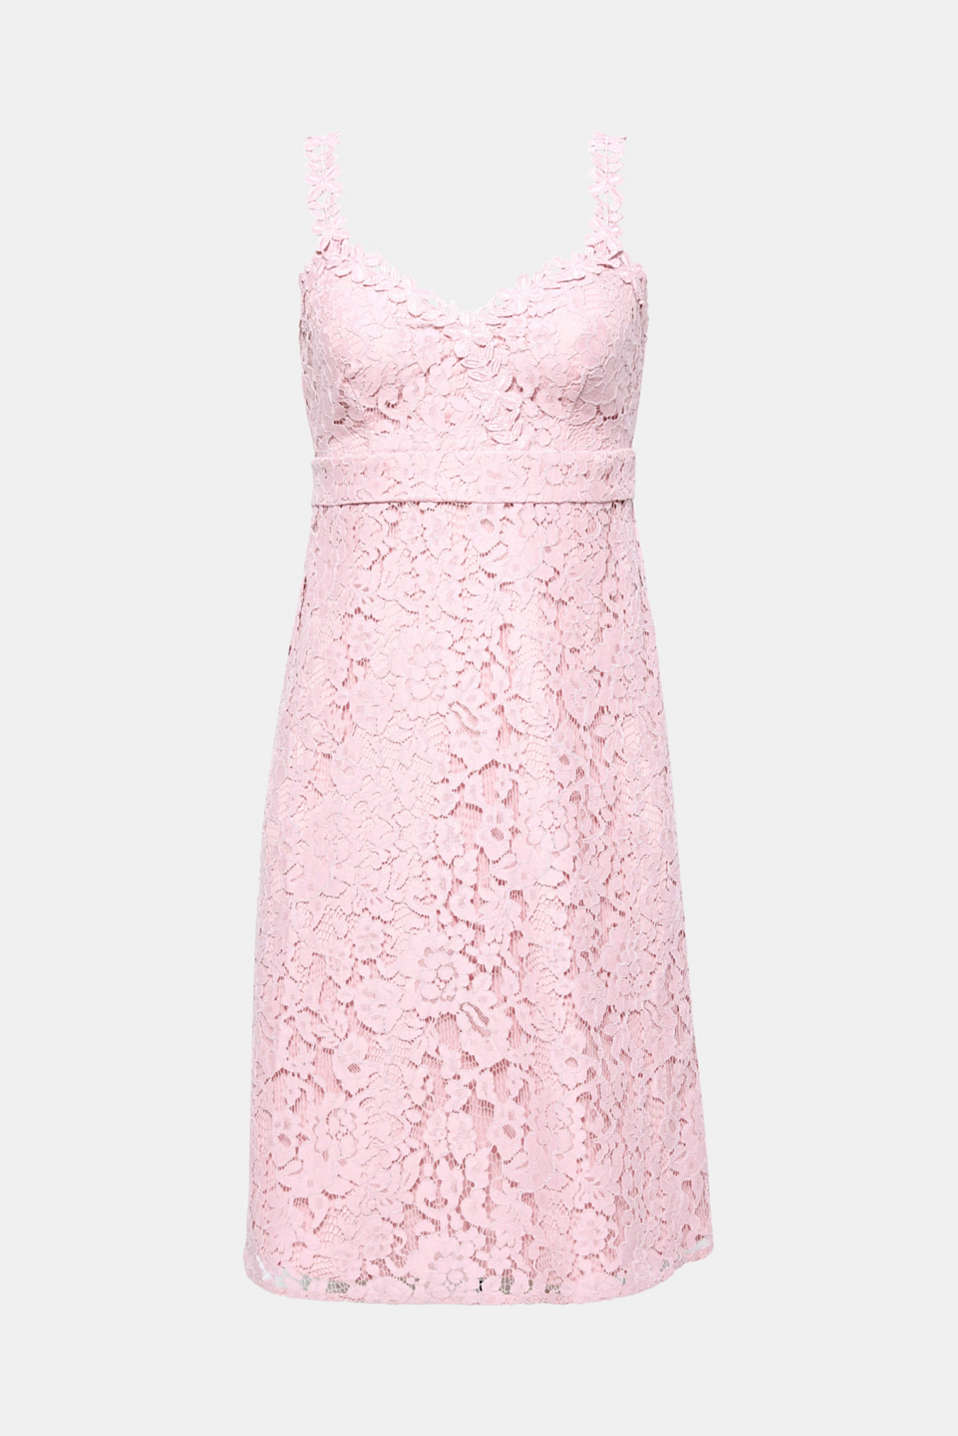 Pure romance! All eyes will be on you in this feminine, pretty dress with floral lace.